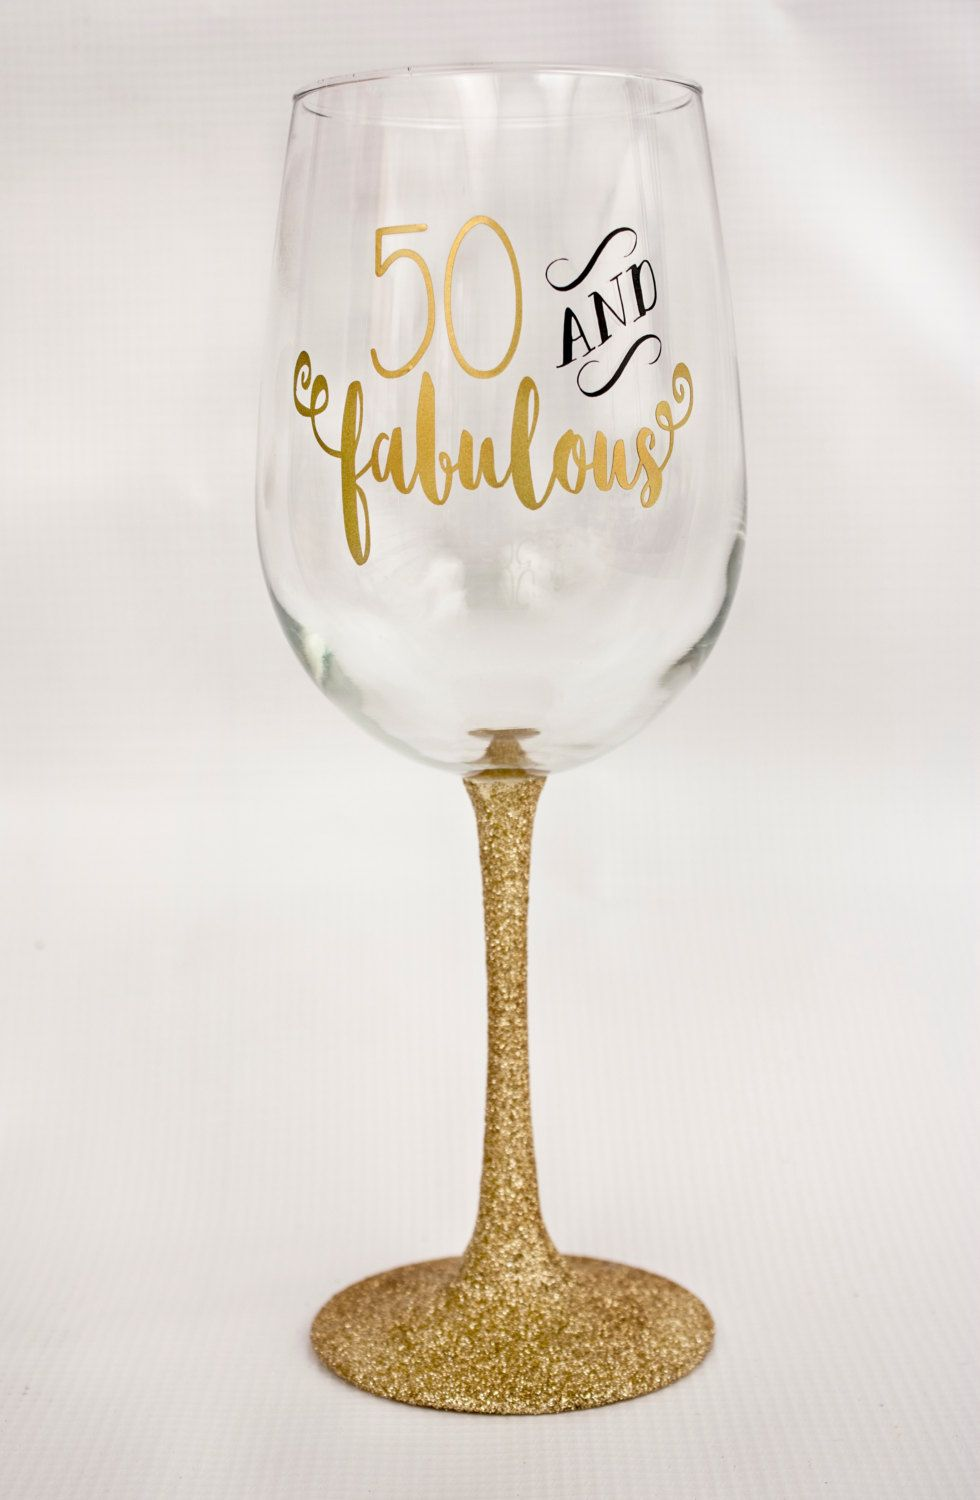 50 And Fabulous Glitter Dipped Wine Glass Birthday Gift